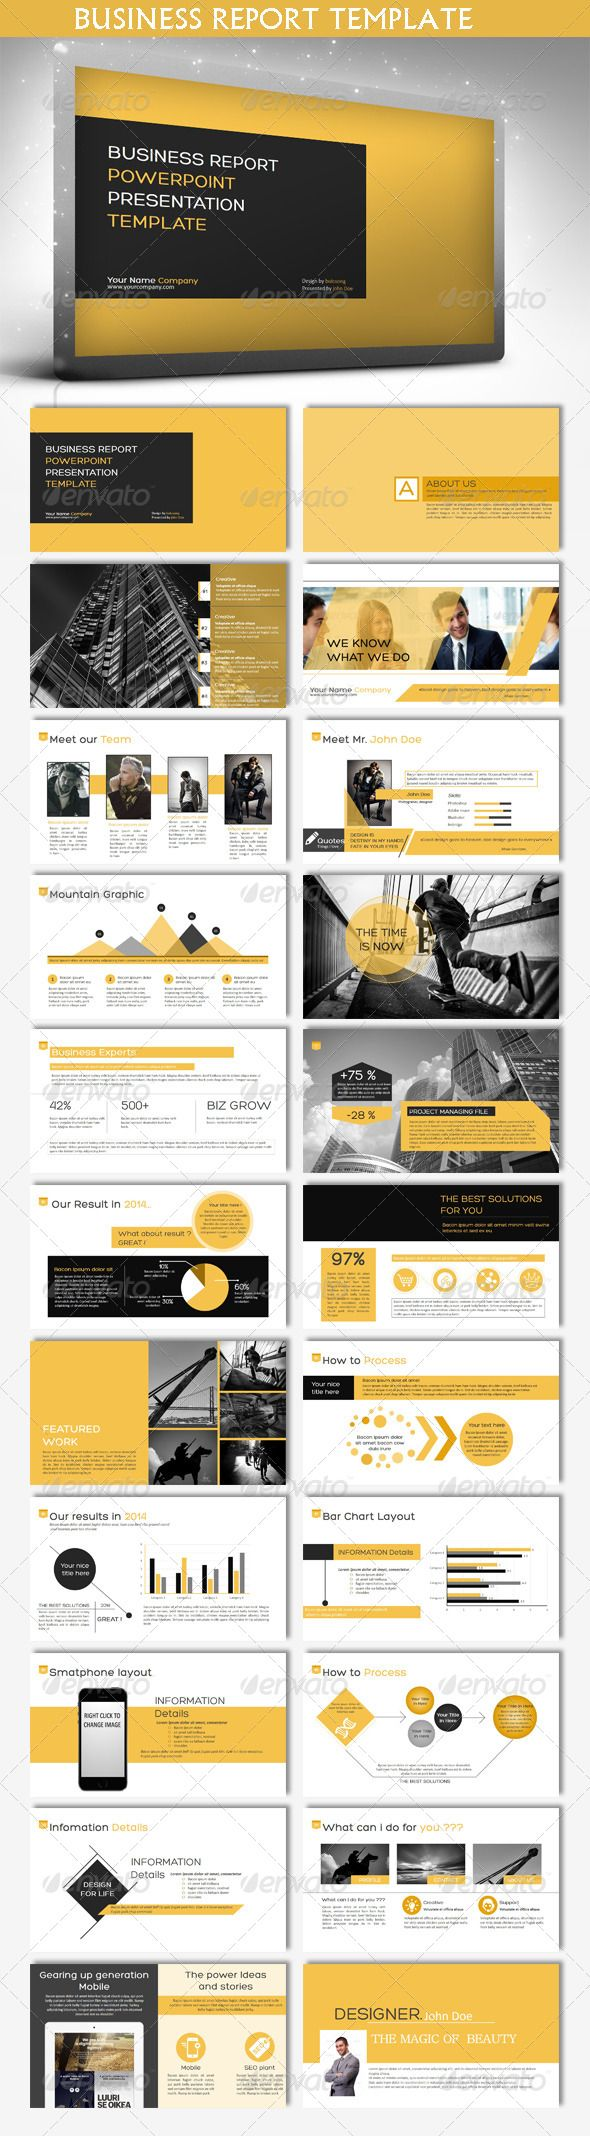 68 best powerpoint designs images on pinterest presentation business report powerpoint template powerpoint templates stunning resources for designers ortheme toneelgroepblik